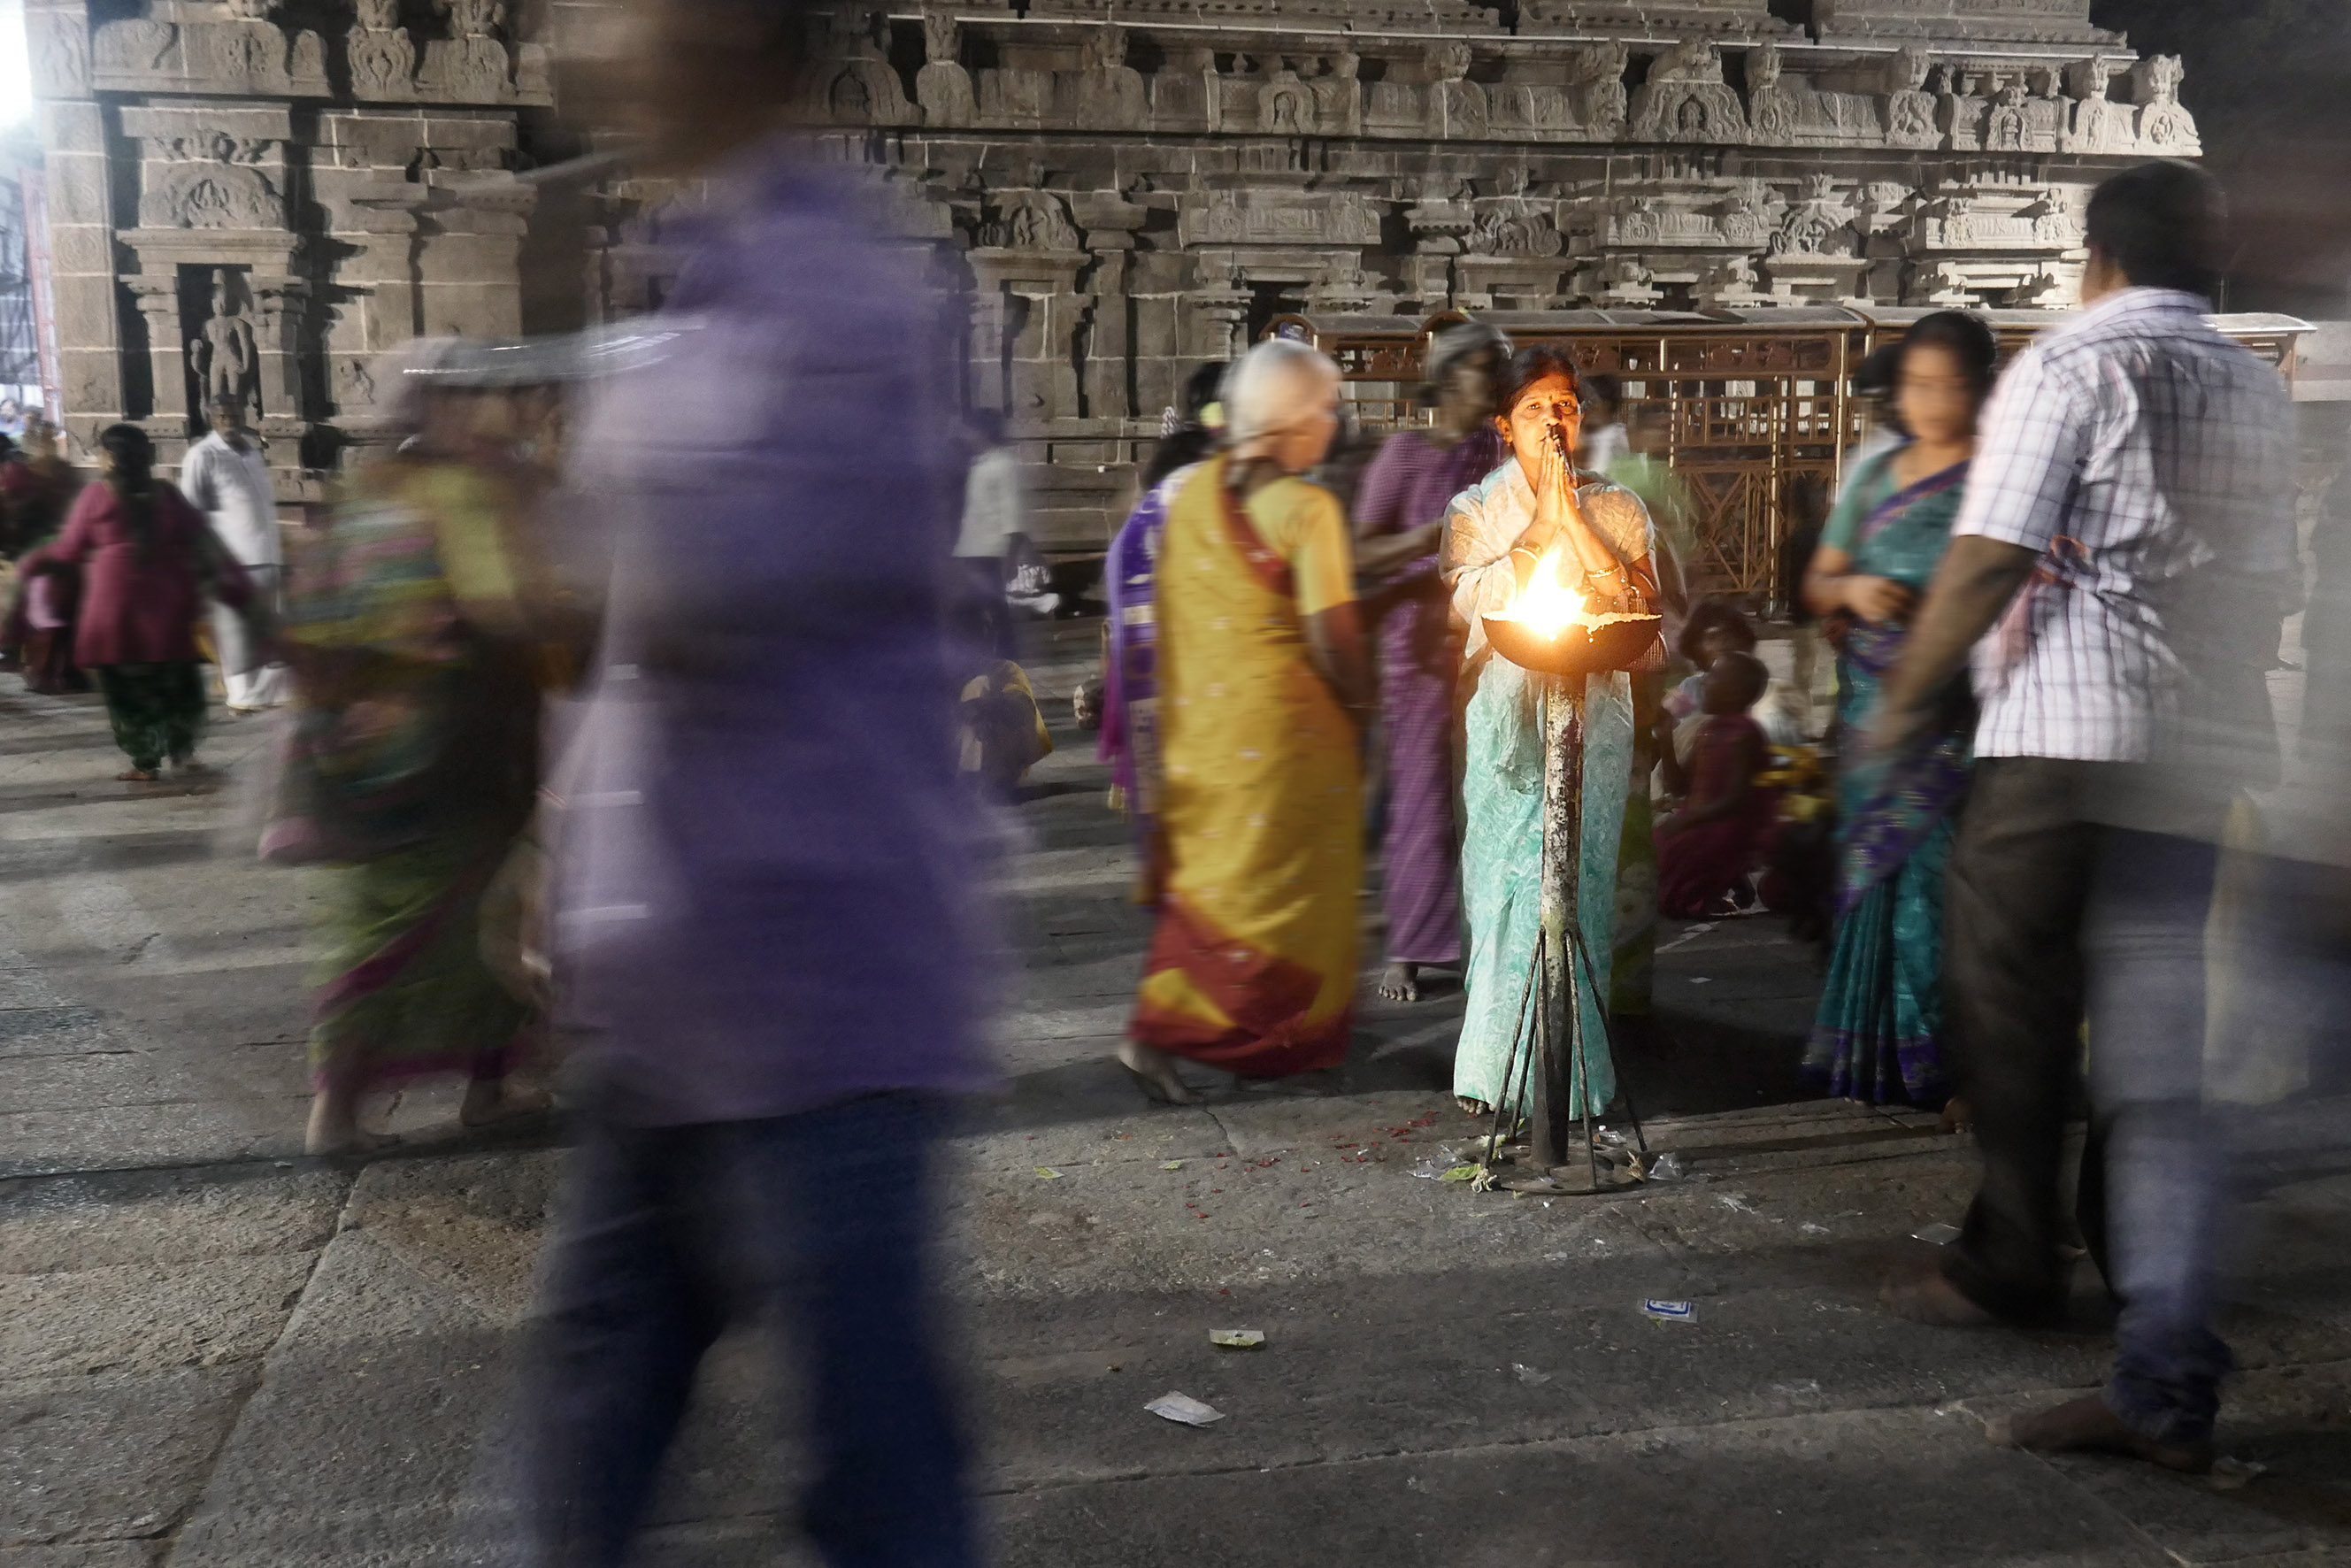 Lady Praying, Hindu temple in India